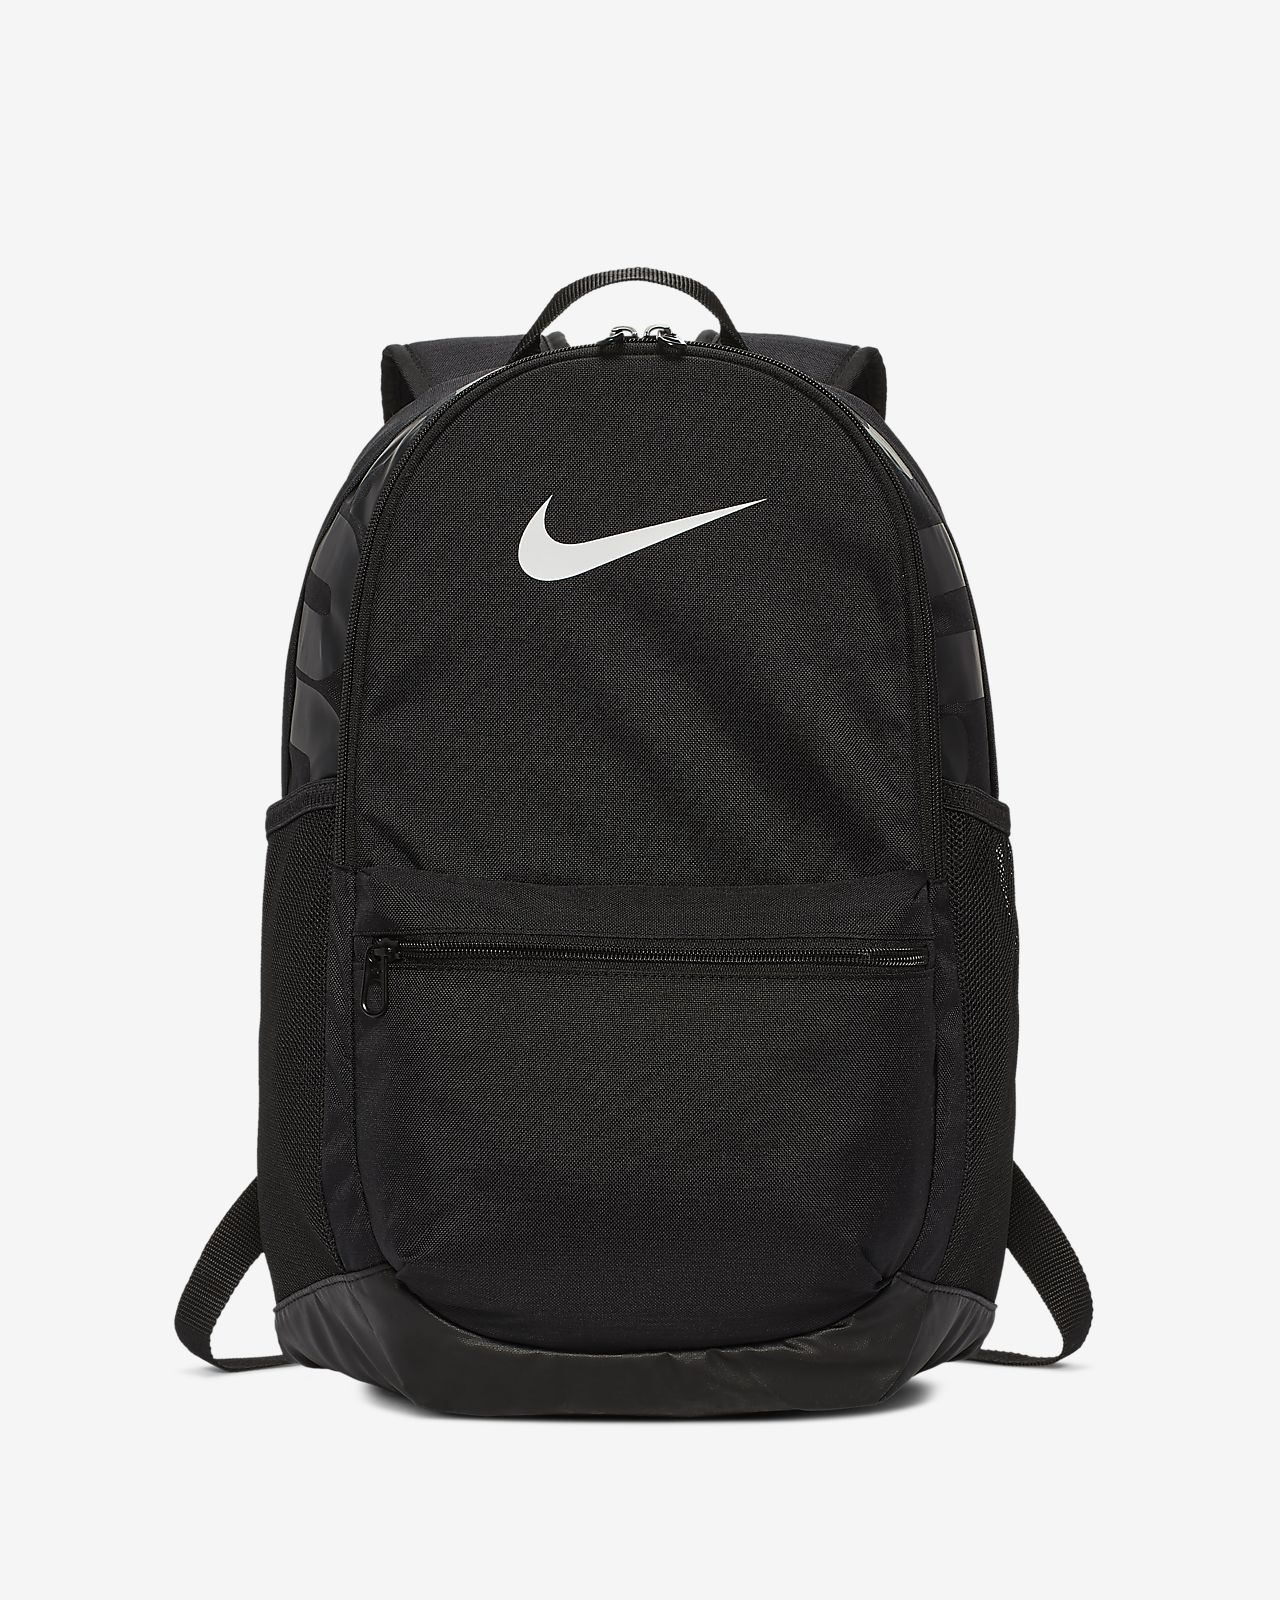 c6ade4c10efe Nike Brasilia (Medium) Training Backpack. Nike.com